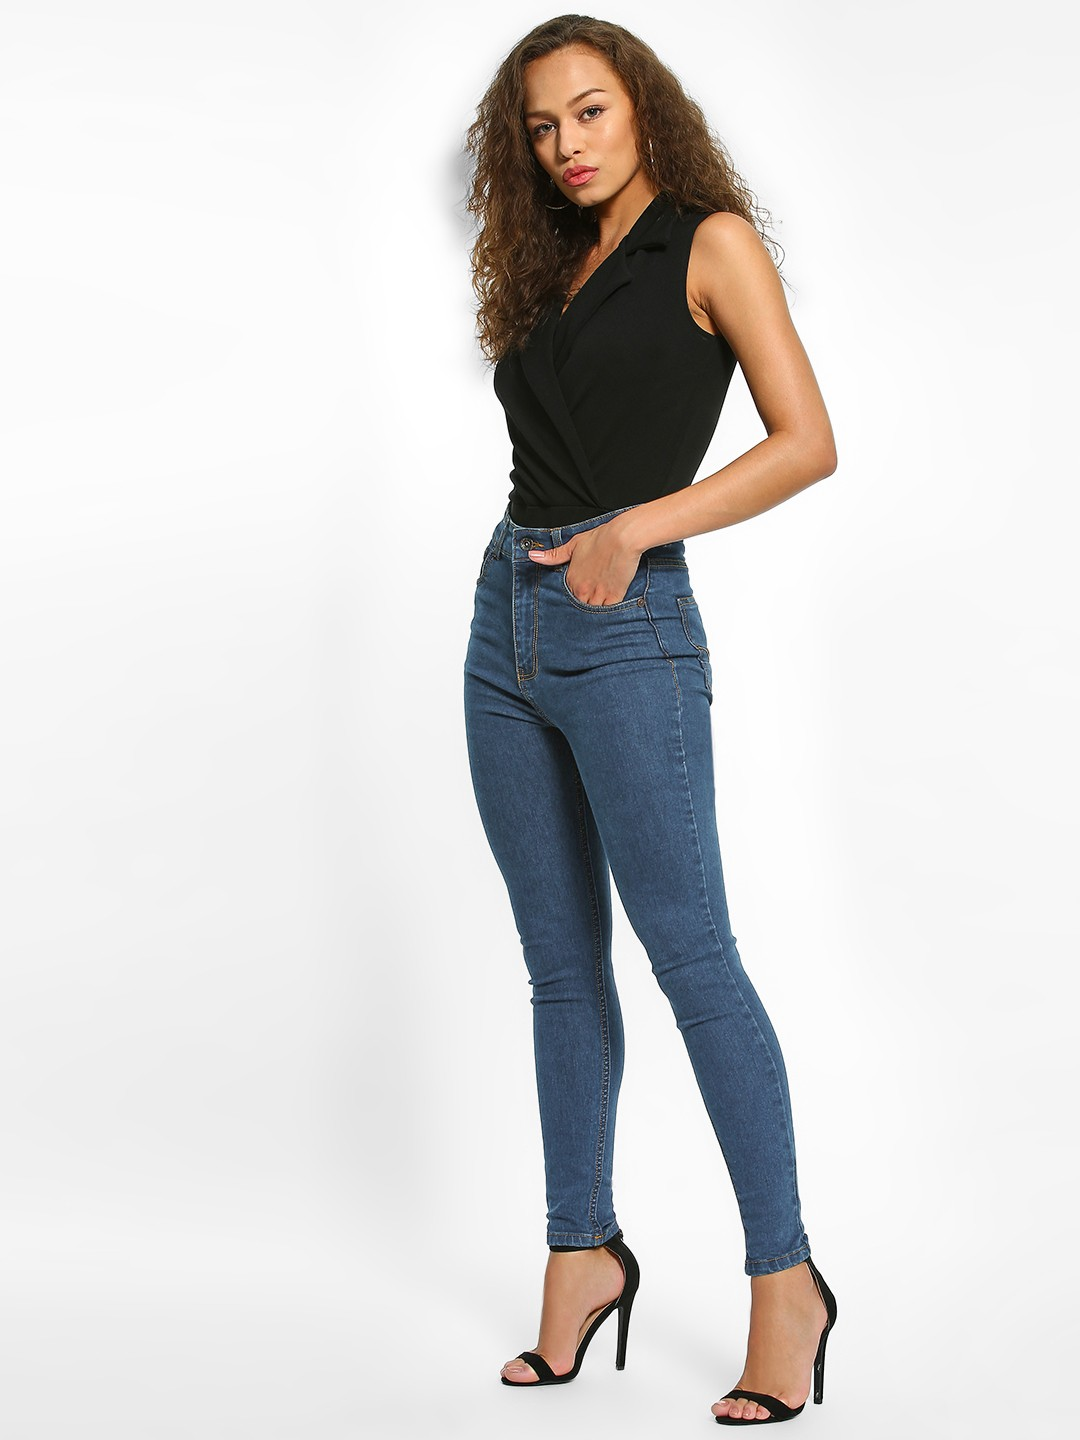 K Denim DK BLUE KOOVS Dark Wash High-Waist Skinny Jeans 1